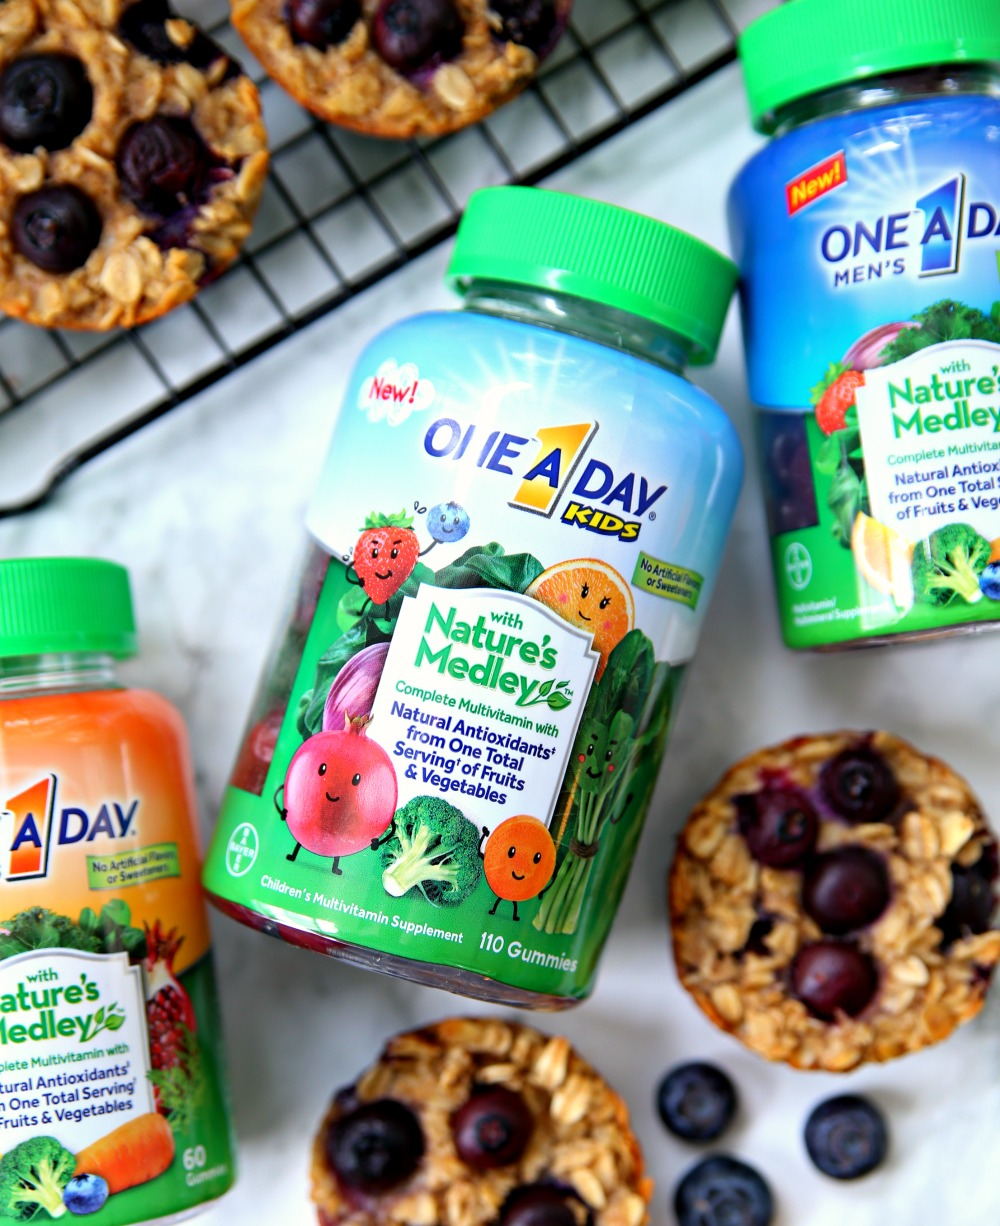 New! One A Day Nature's Medley